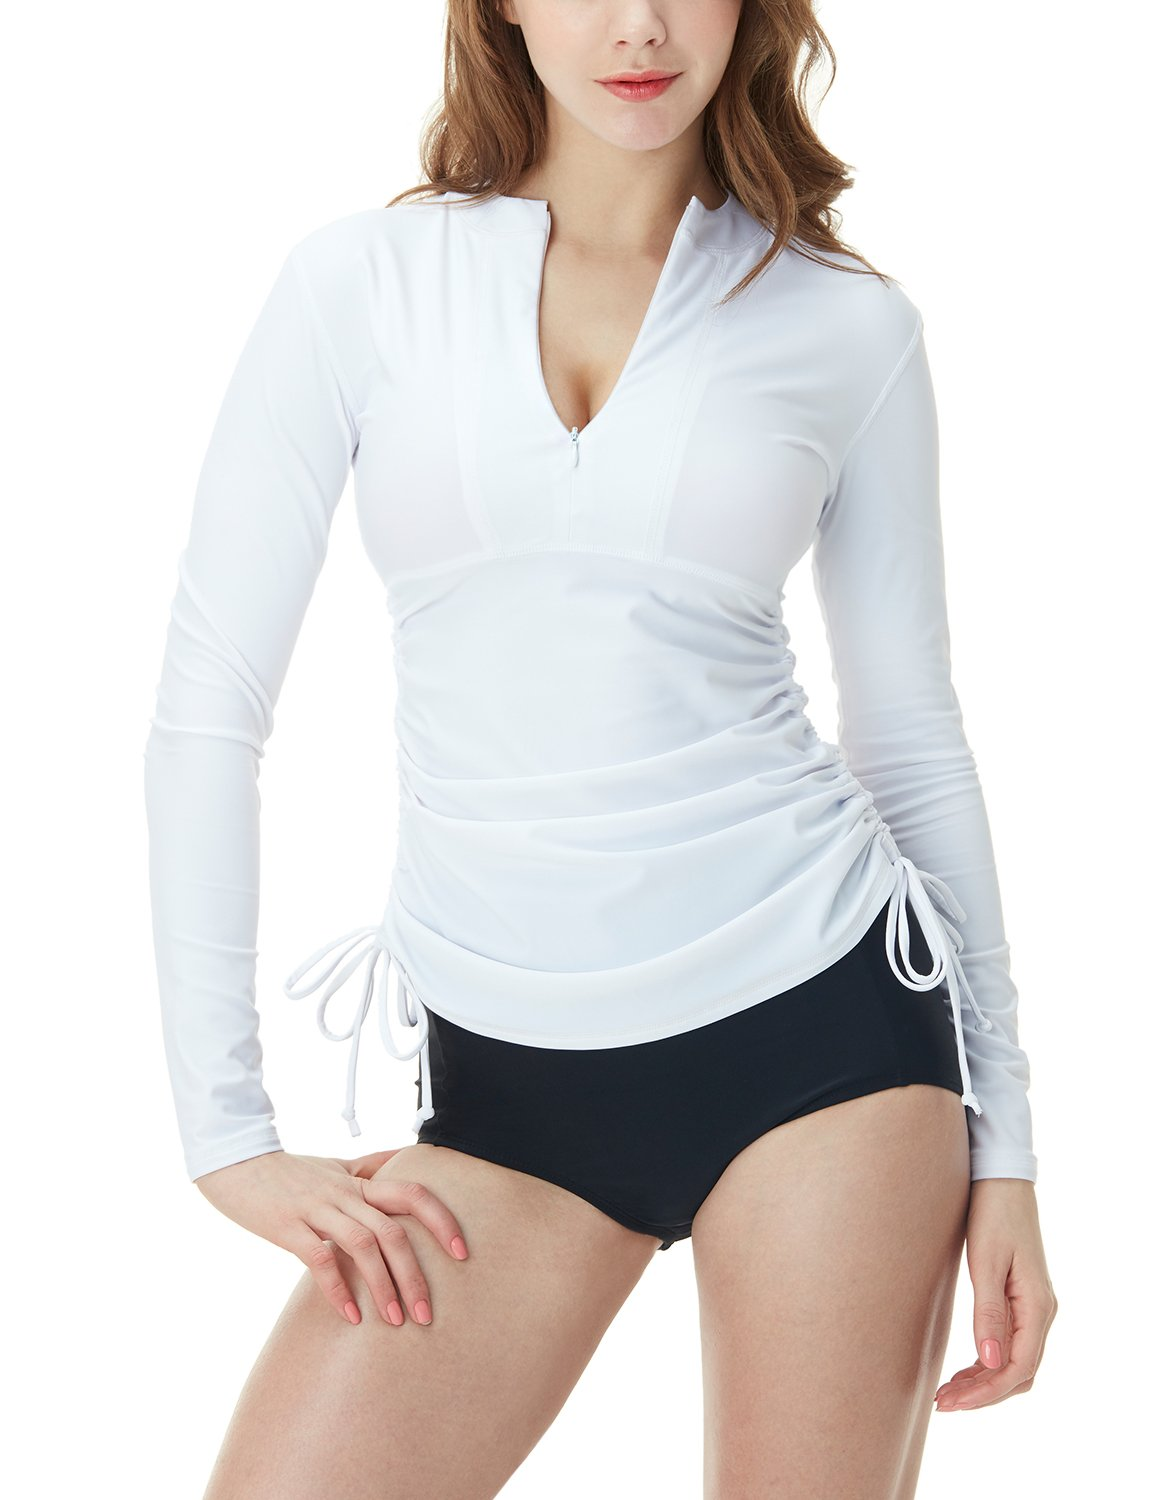 TSLA Women's UPF 50+ Full & Half Zip Front Long Sleeve Top Rashguard Swimsuit, Half Zip(fsz04) - White, X-Large by TSLA